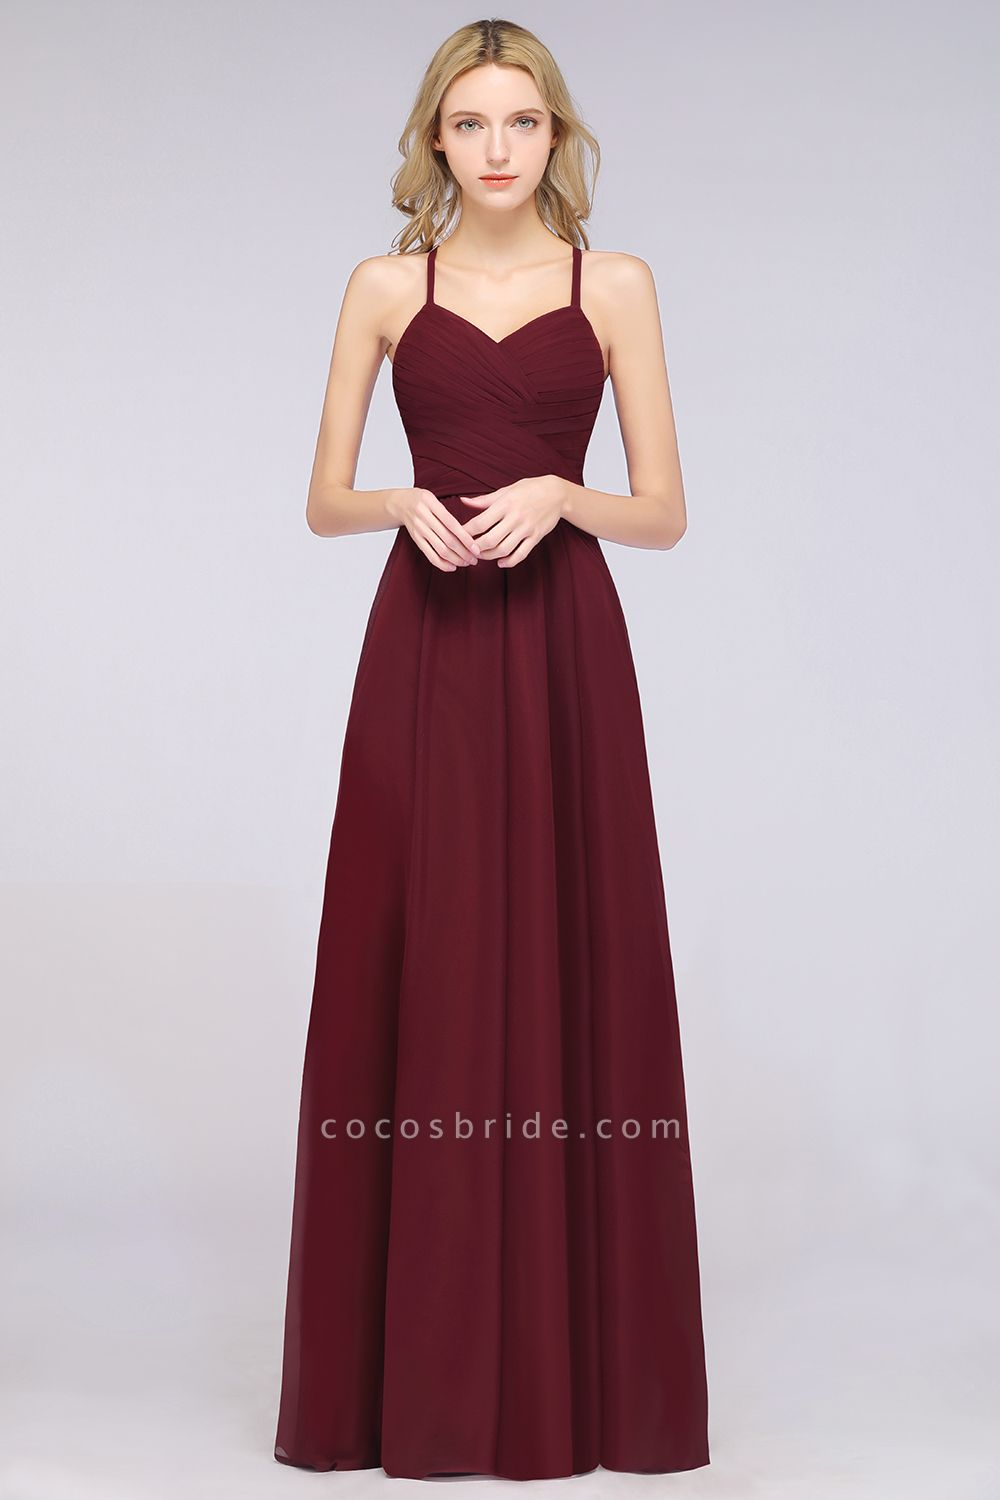 A-Line Chiffon Halter V-Neck Sleeveless Floor-Length Bridesmaid Dress with Ruffles